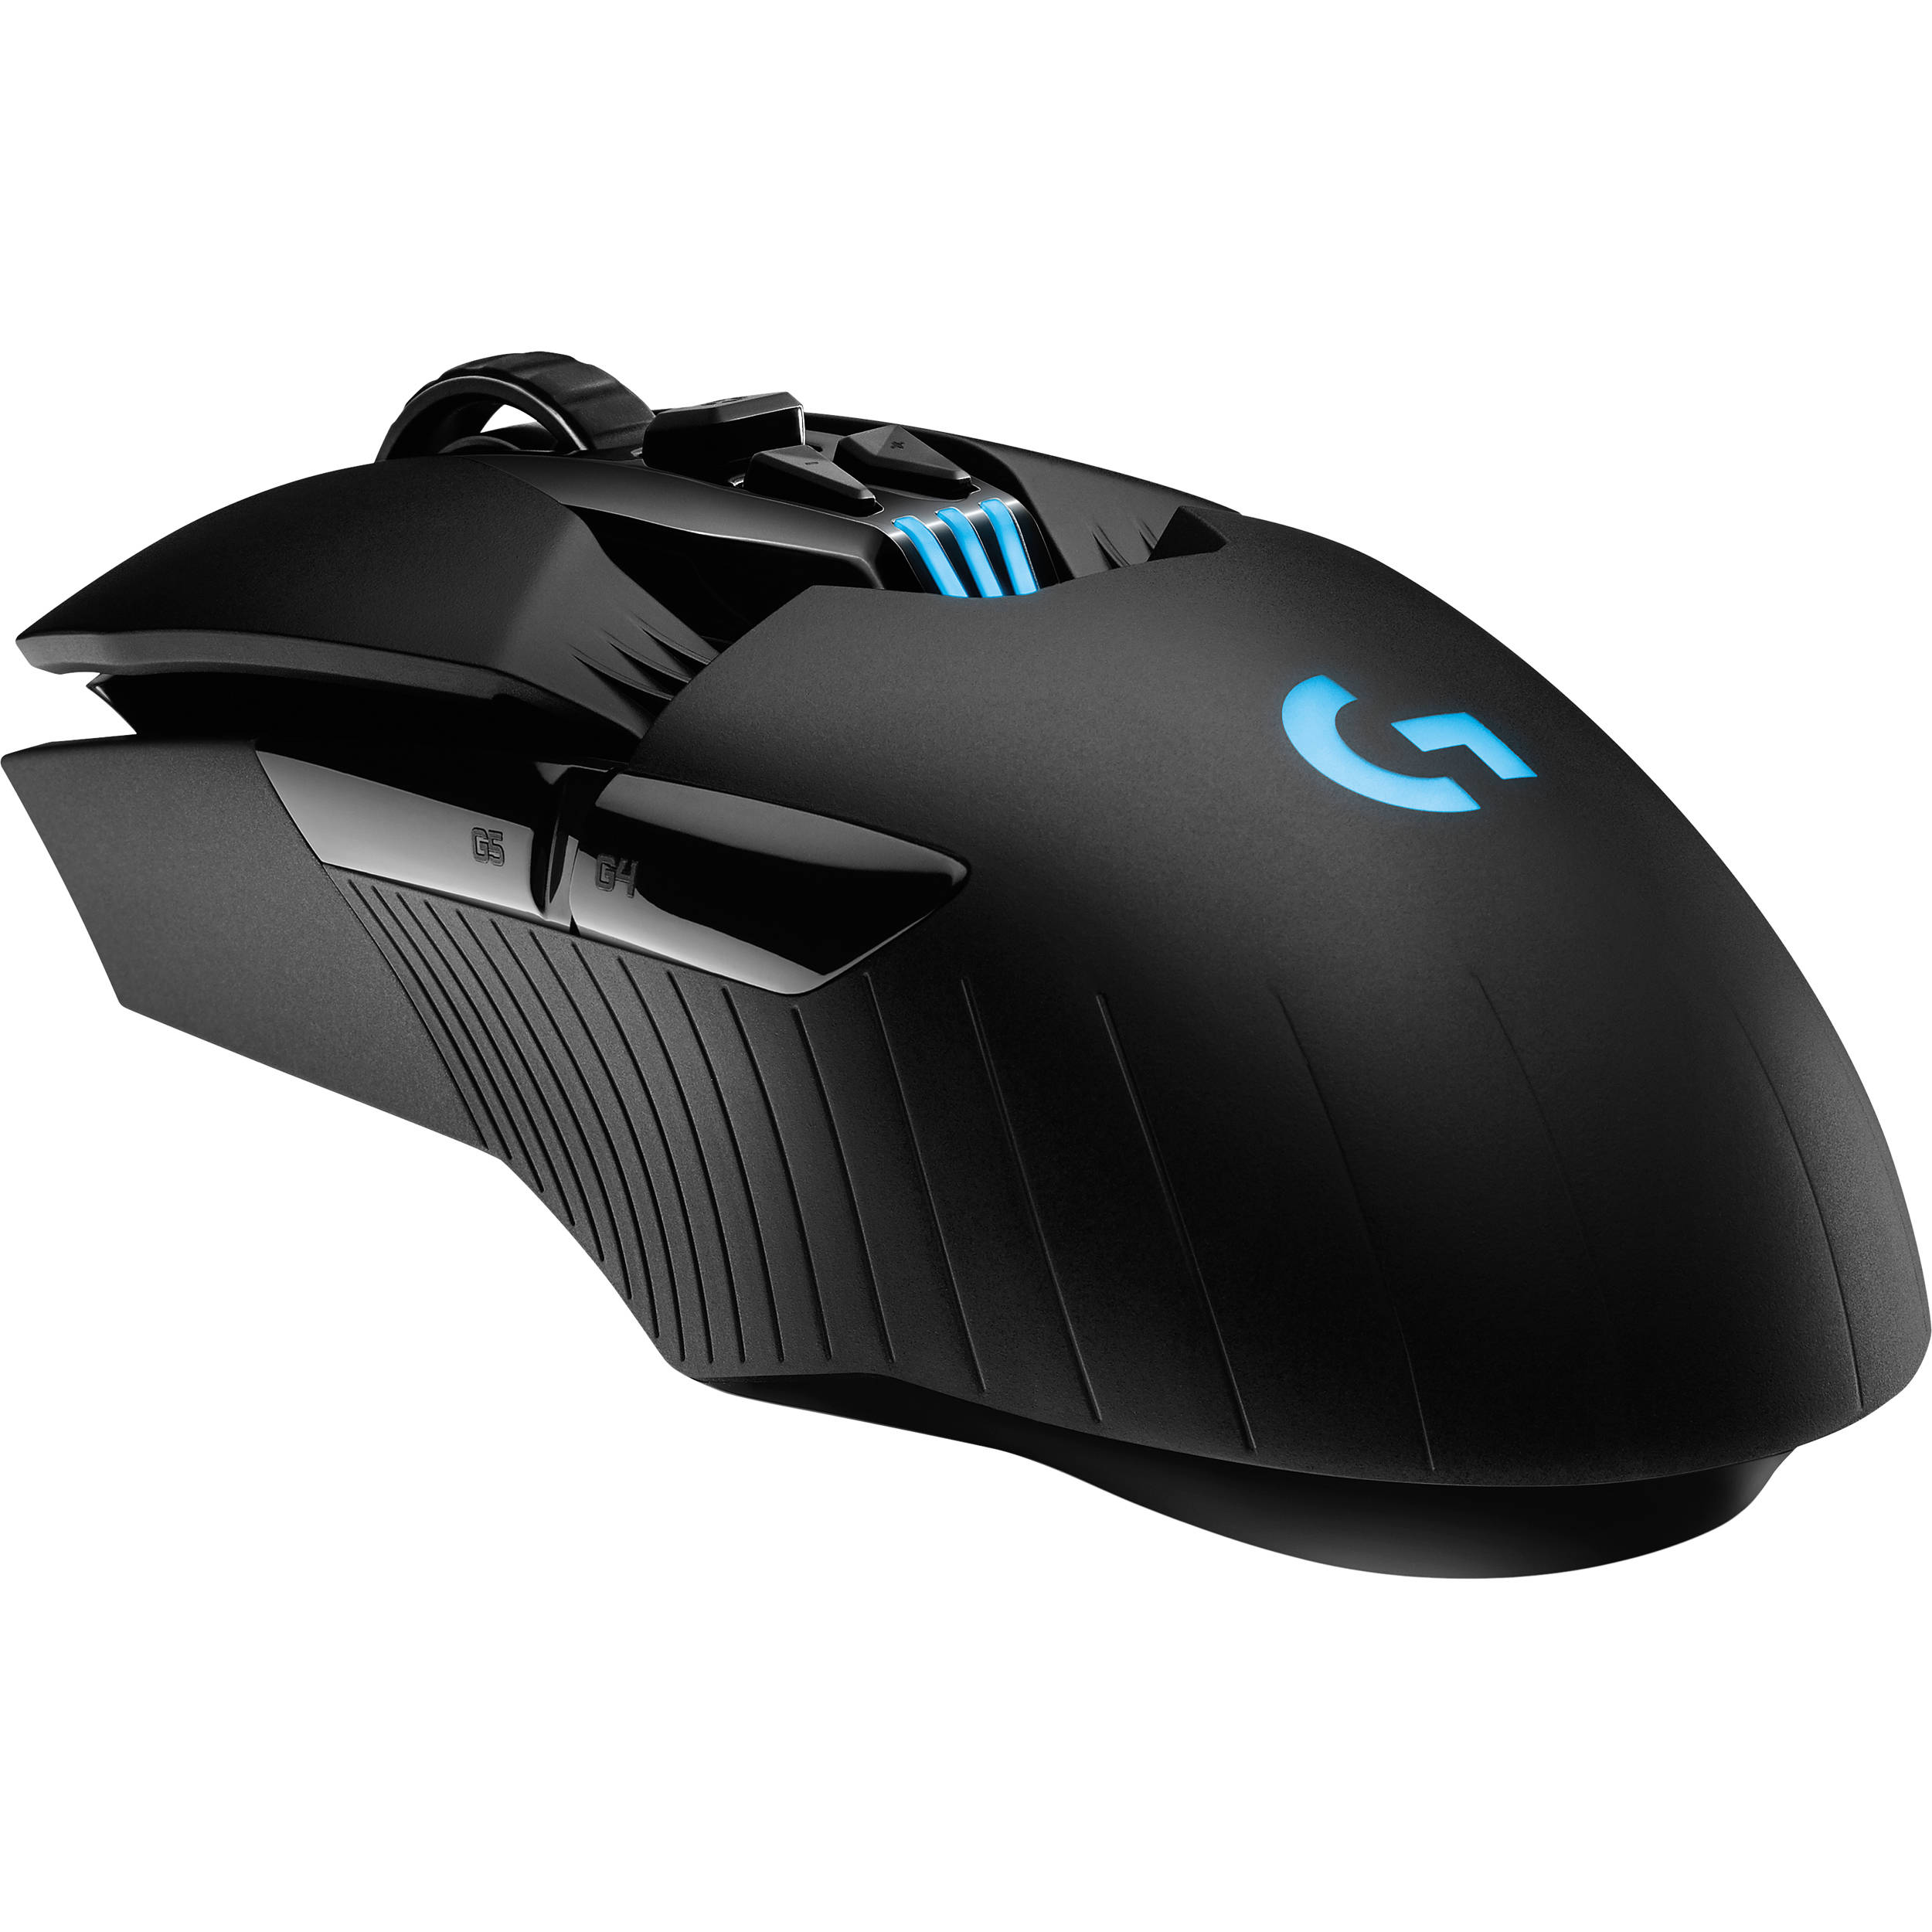 Gaming Mice | B&H Photo Video